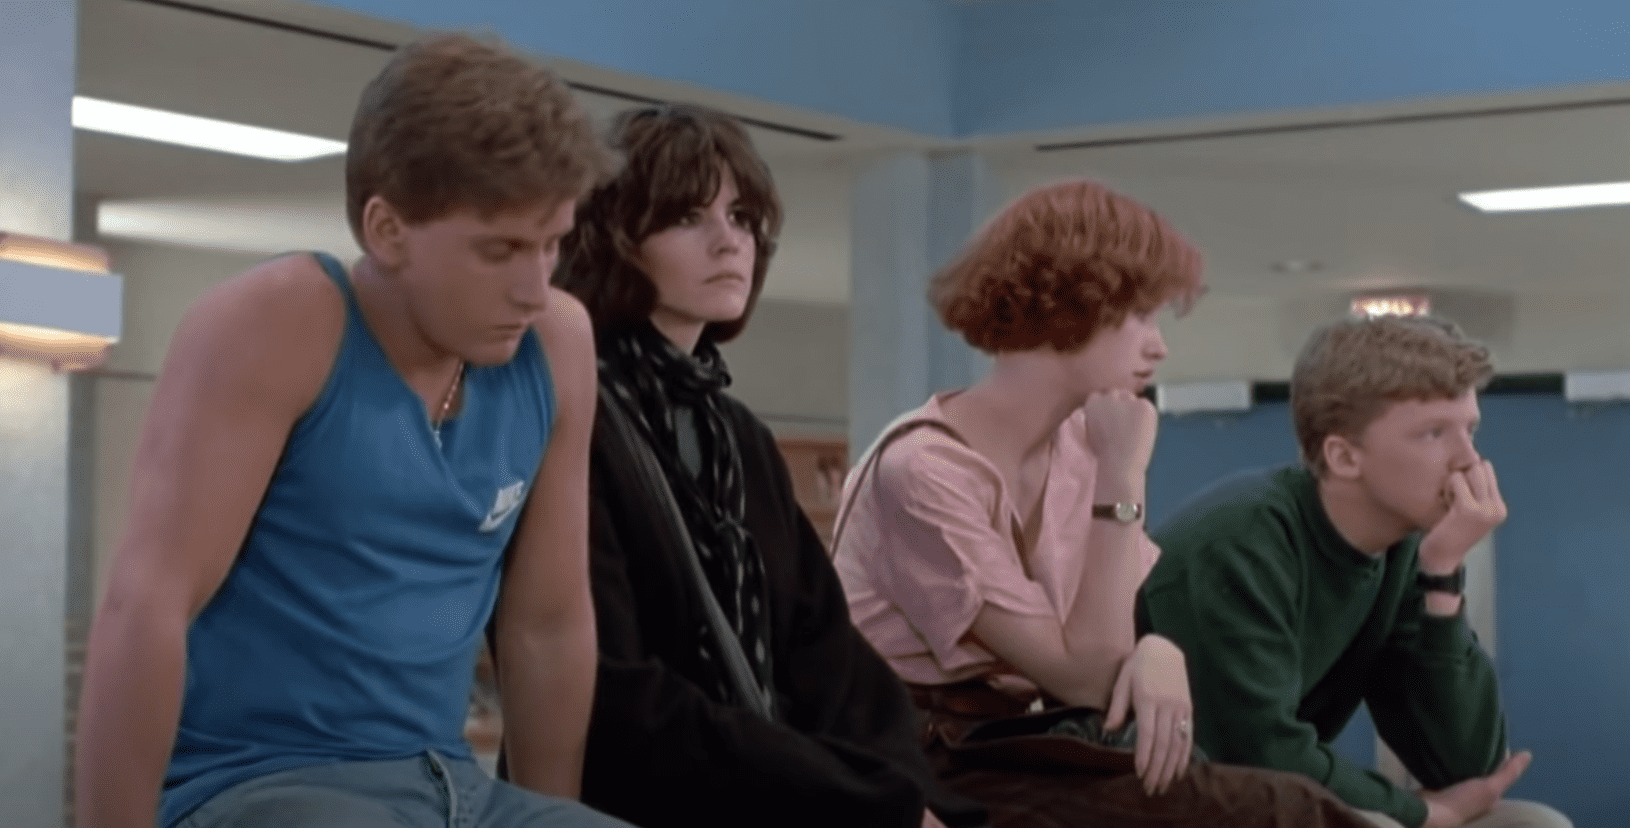 Image Source: Youtube/MsMojo/The Breakfast Club/Universal Pictures